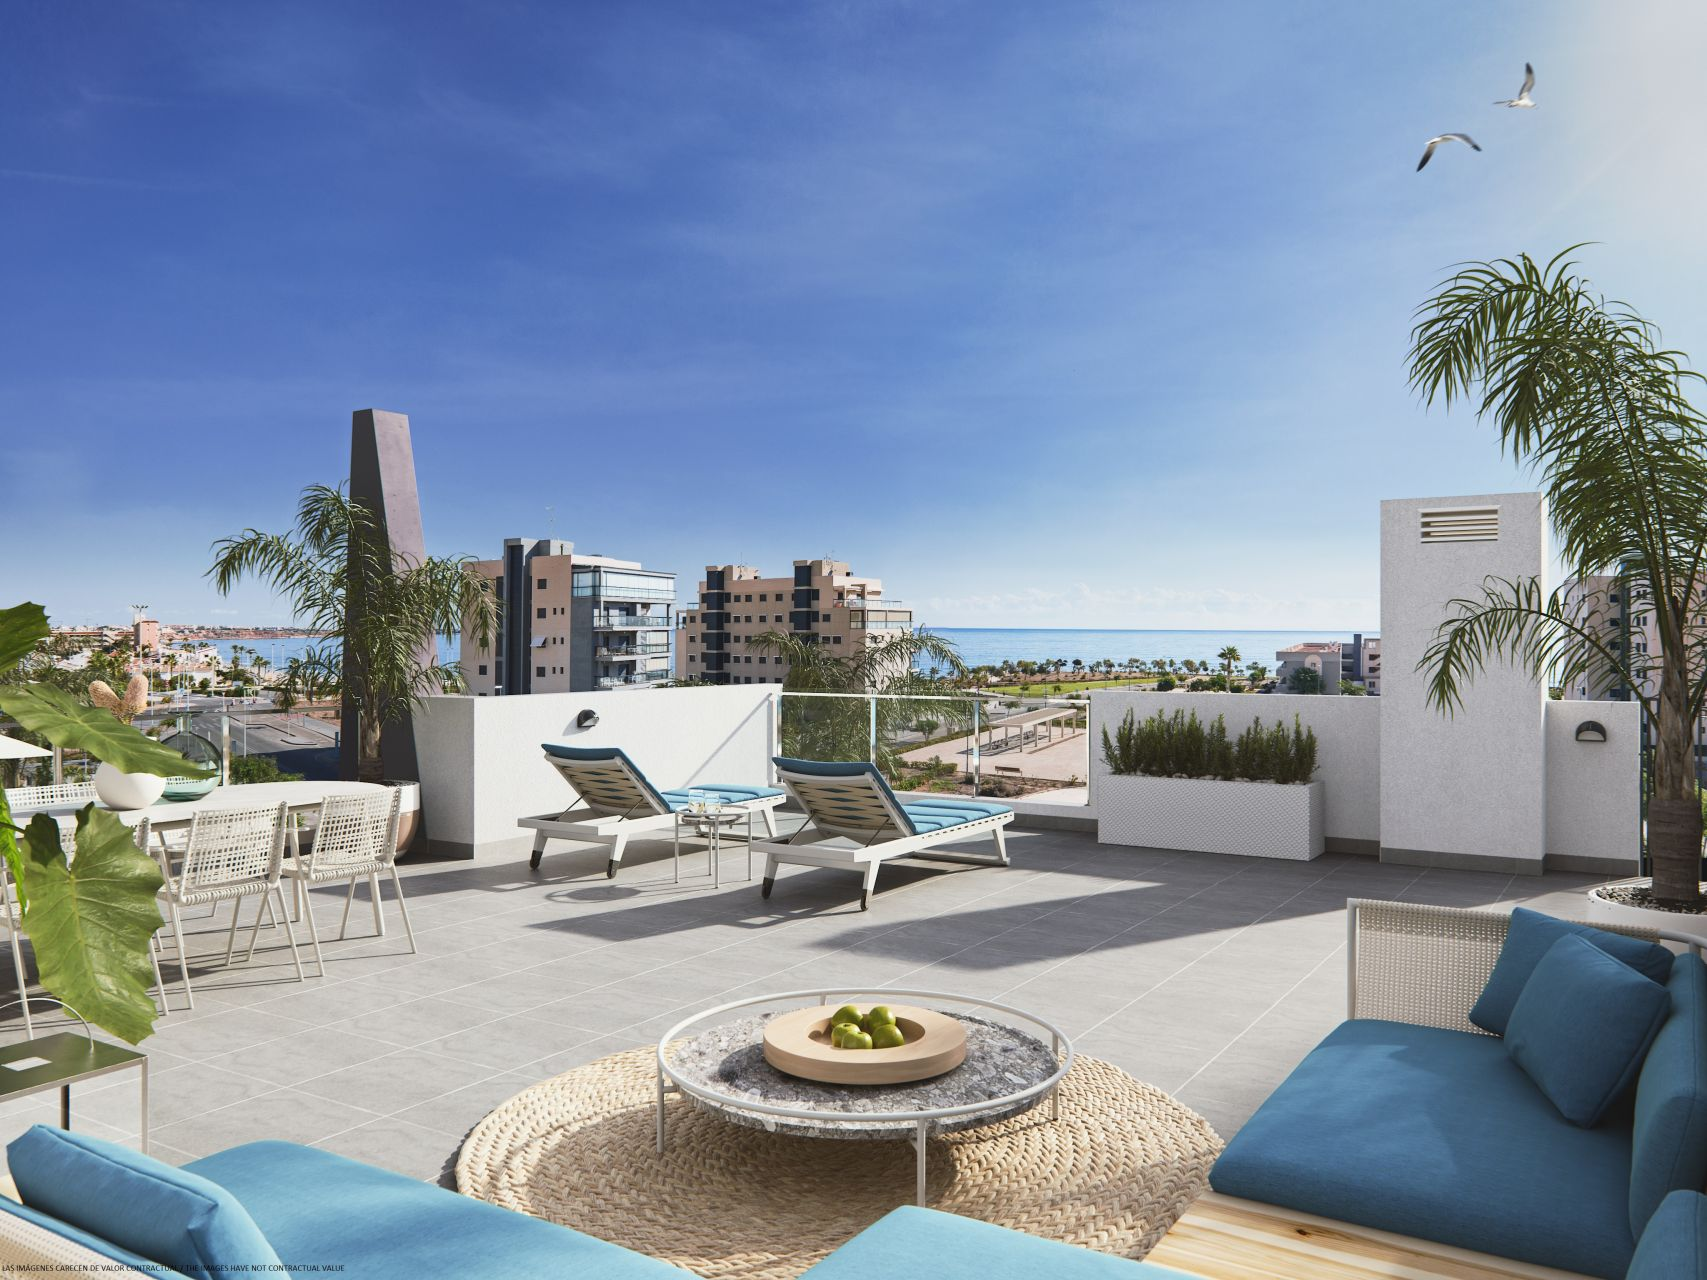 Exclusive apartments in the beautiful location of Benidorm 13